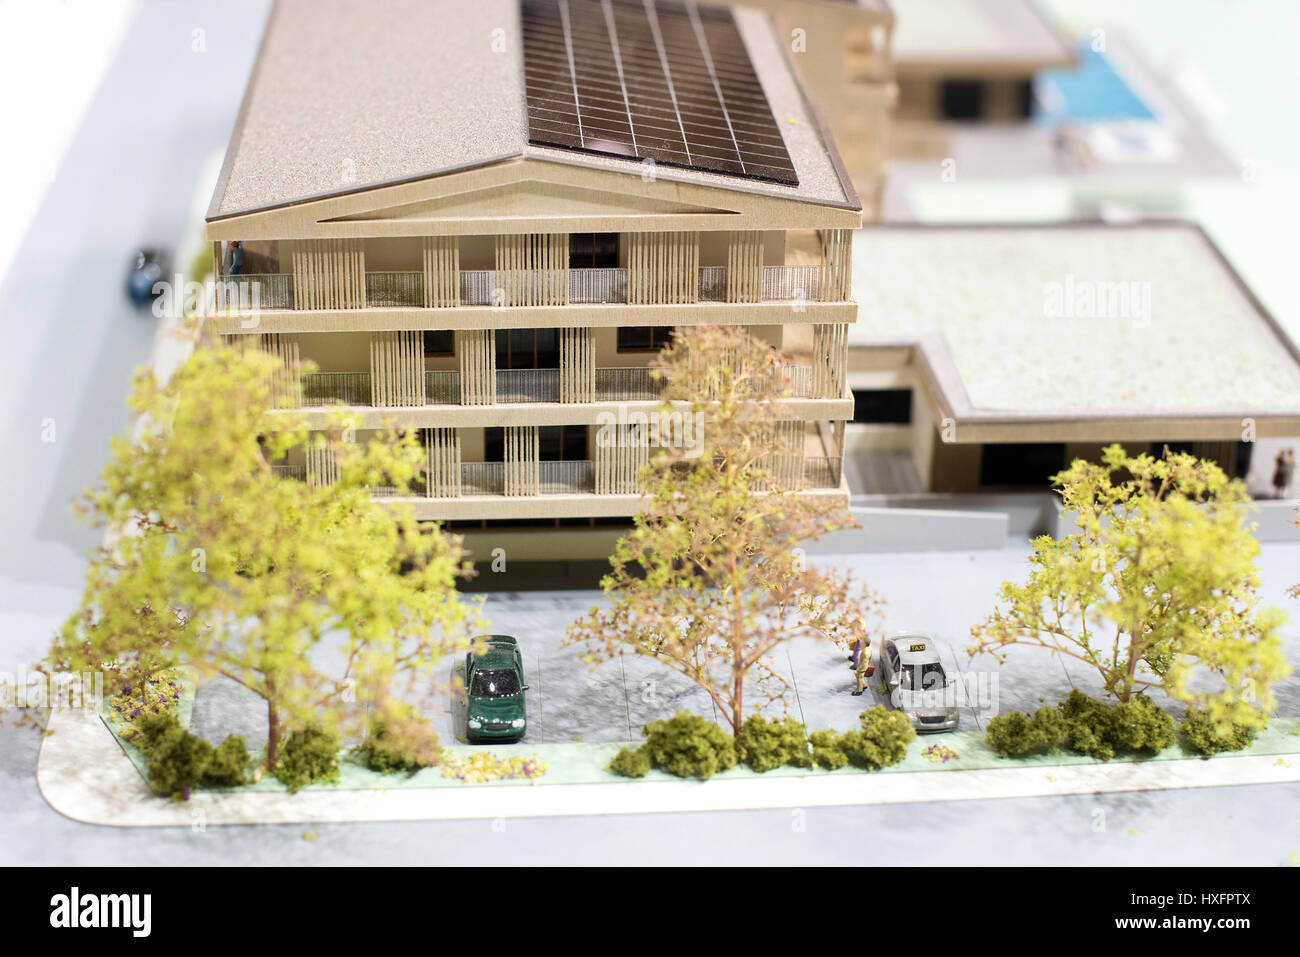 Scale Model Of A Multi Storey Eco Friendly House Or Small